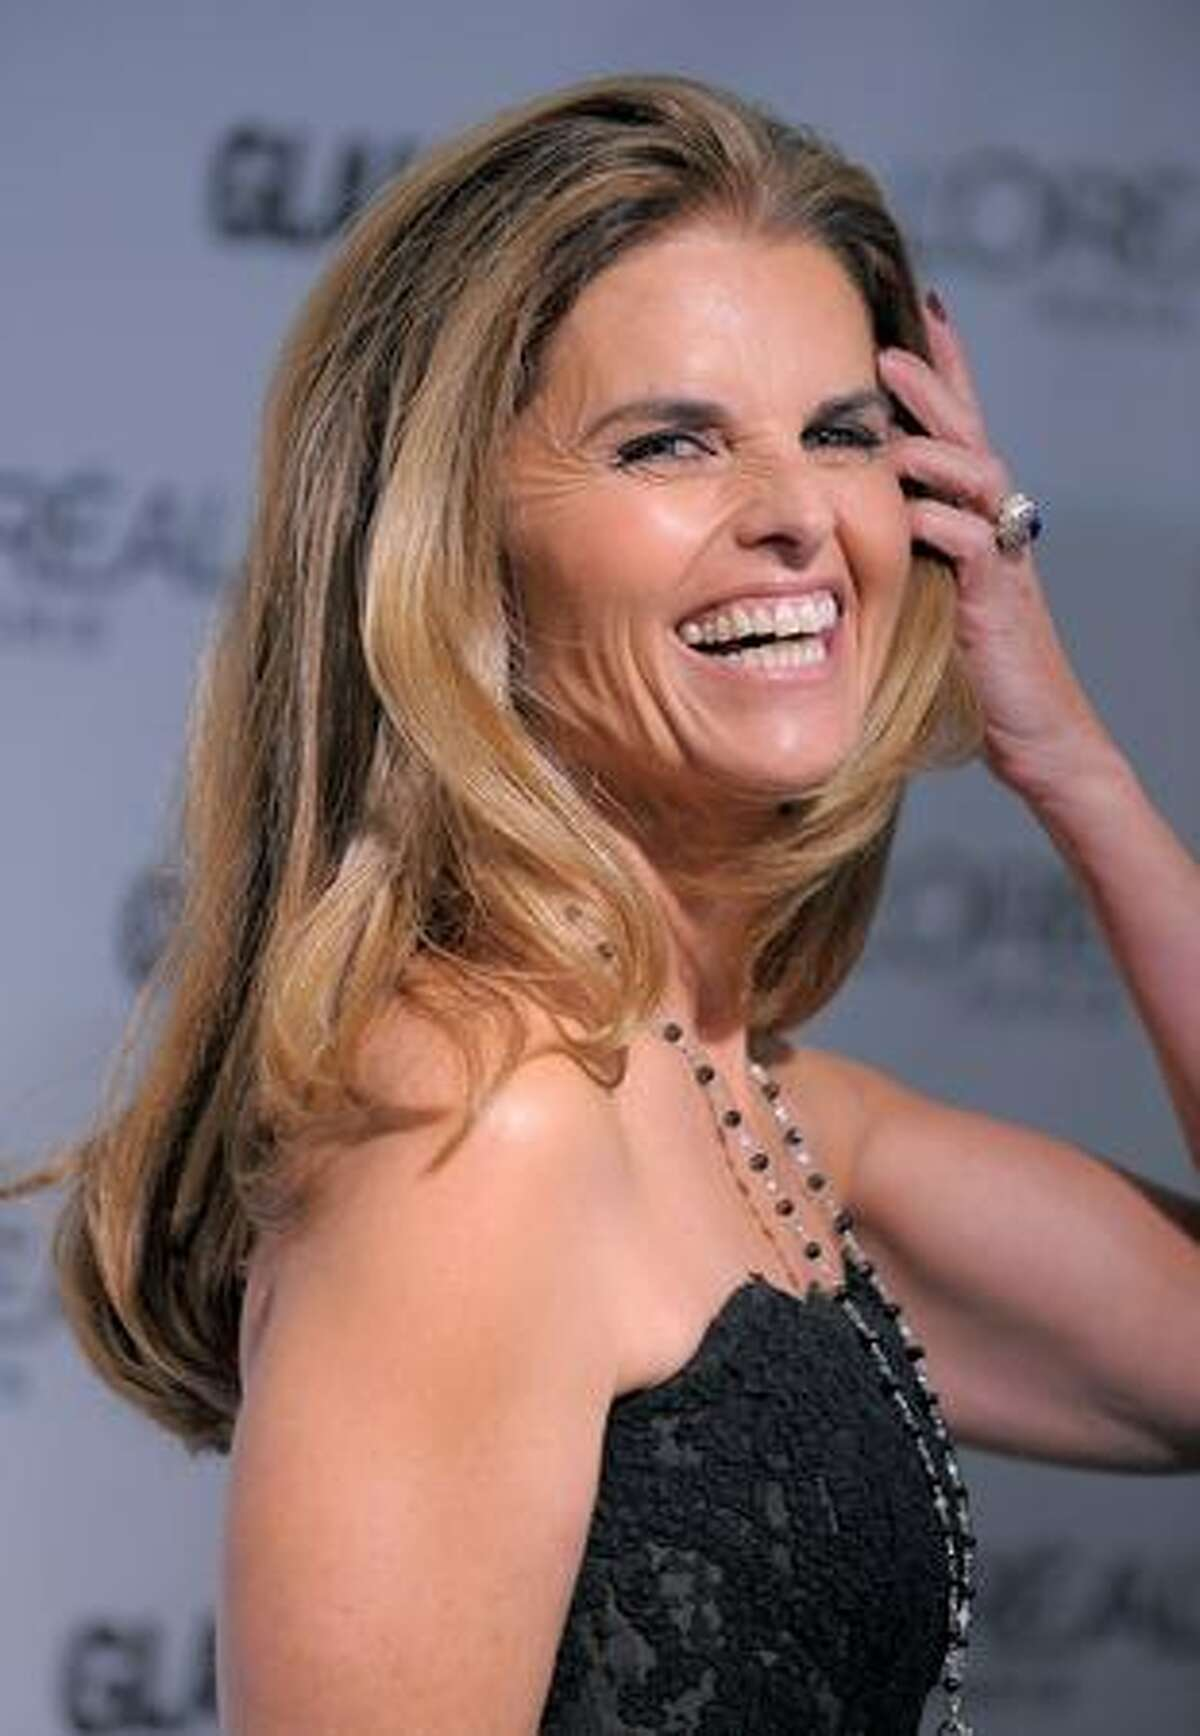 Journalist and First Lady of California Maria Shriver attends the Glamour Magazine 2009 Women of The Year Honors at Carnegie Hall in New York City.